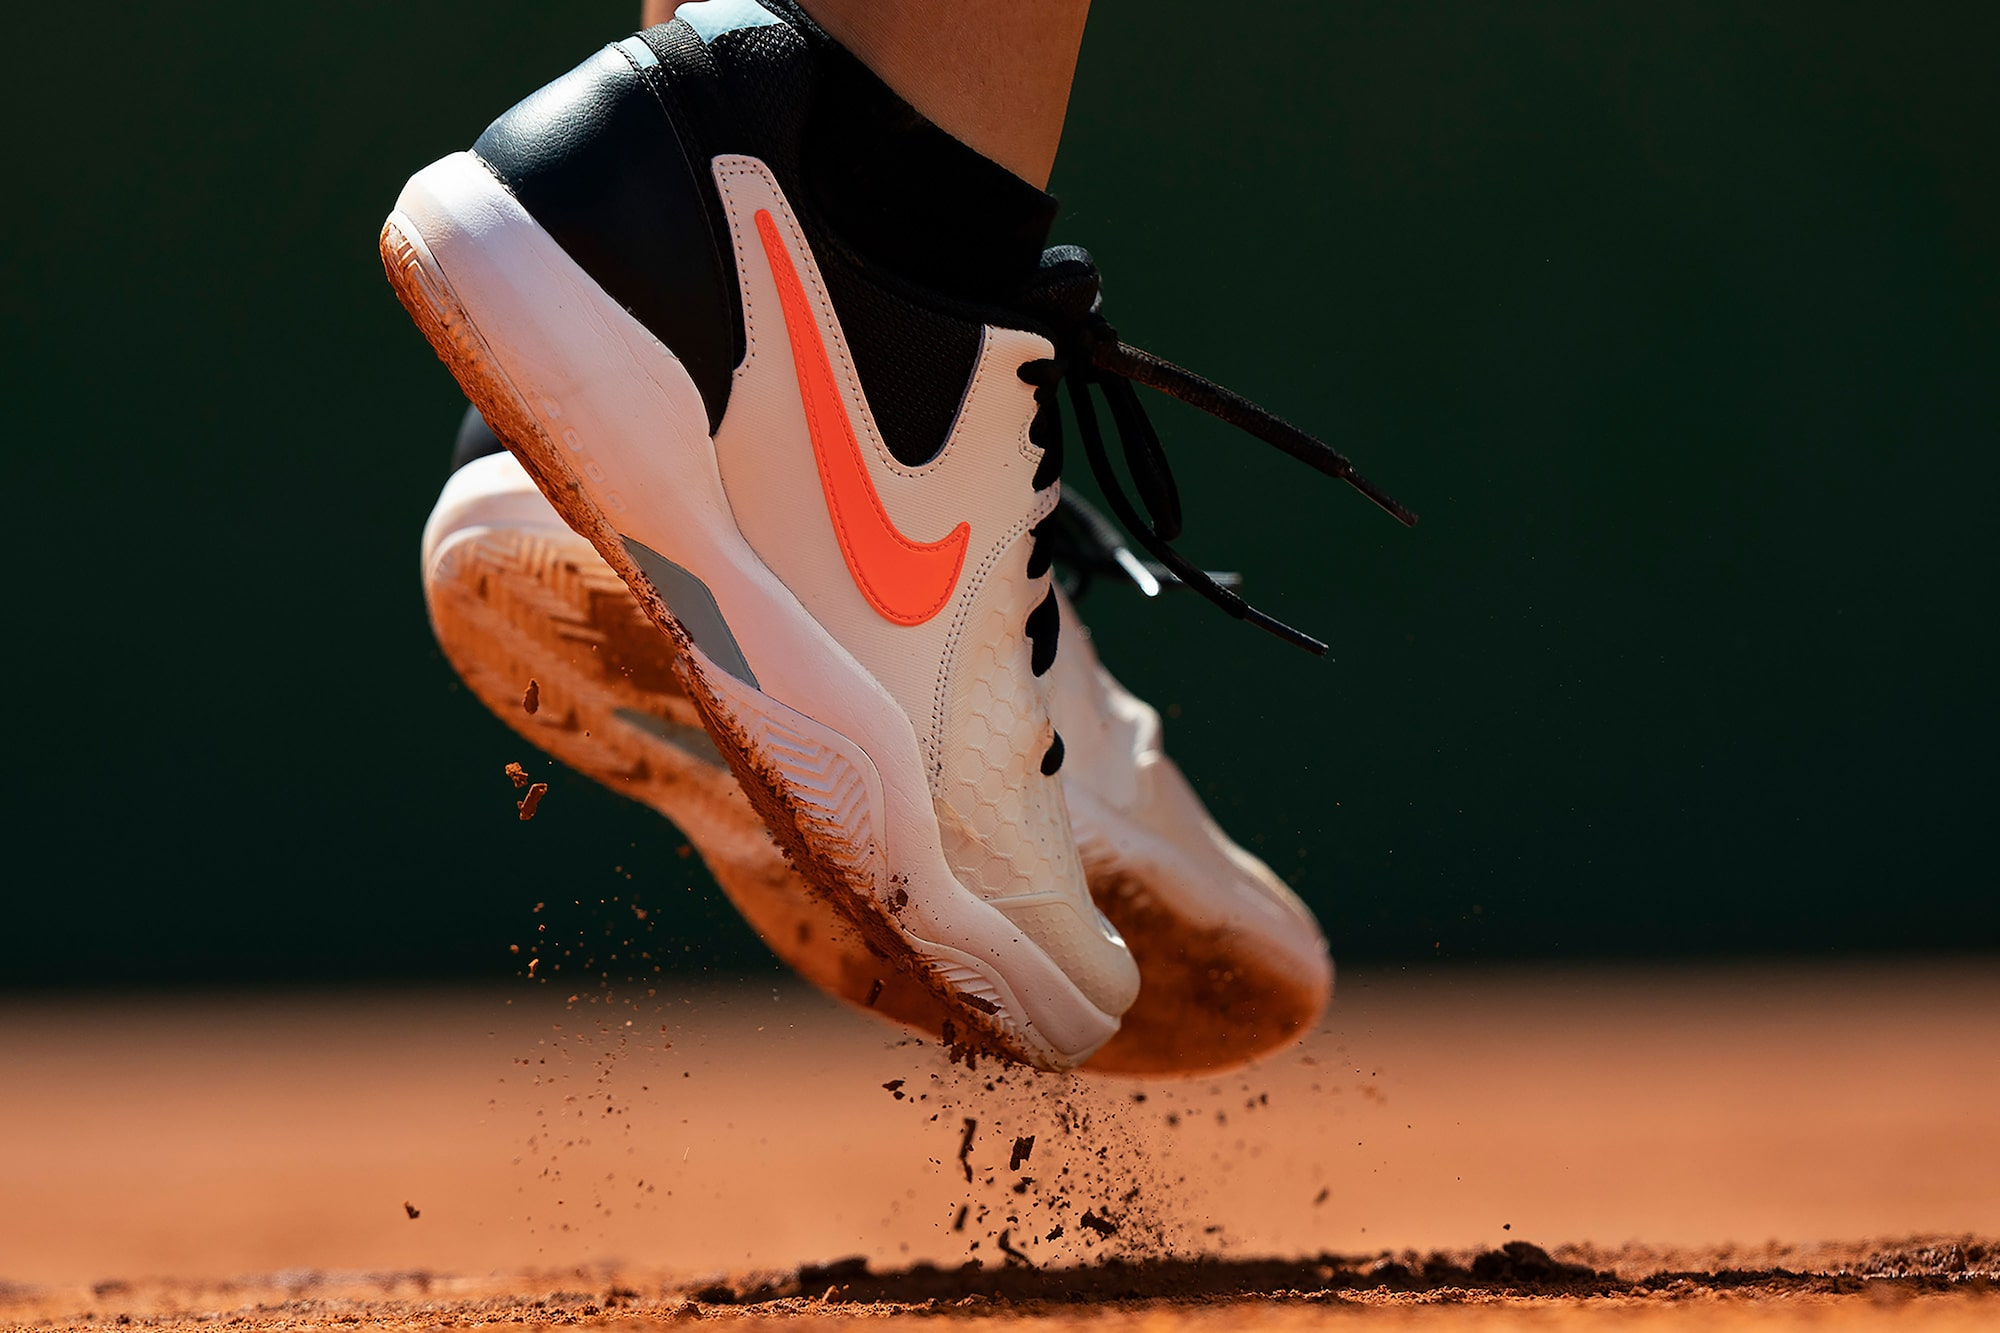 Bob-Martin-sony-alpha-9-tennis-close-up-of-tennis-players-feet-as-they-leave-the-ground-mid-shot